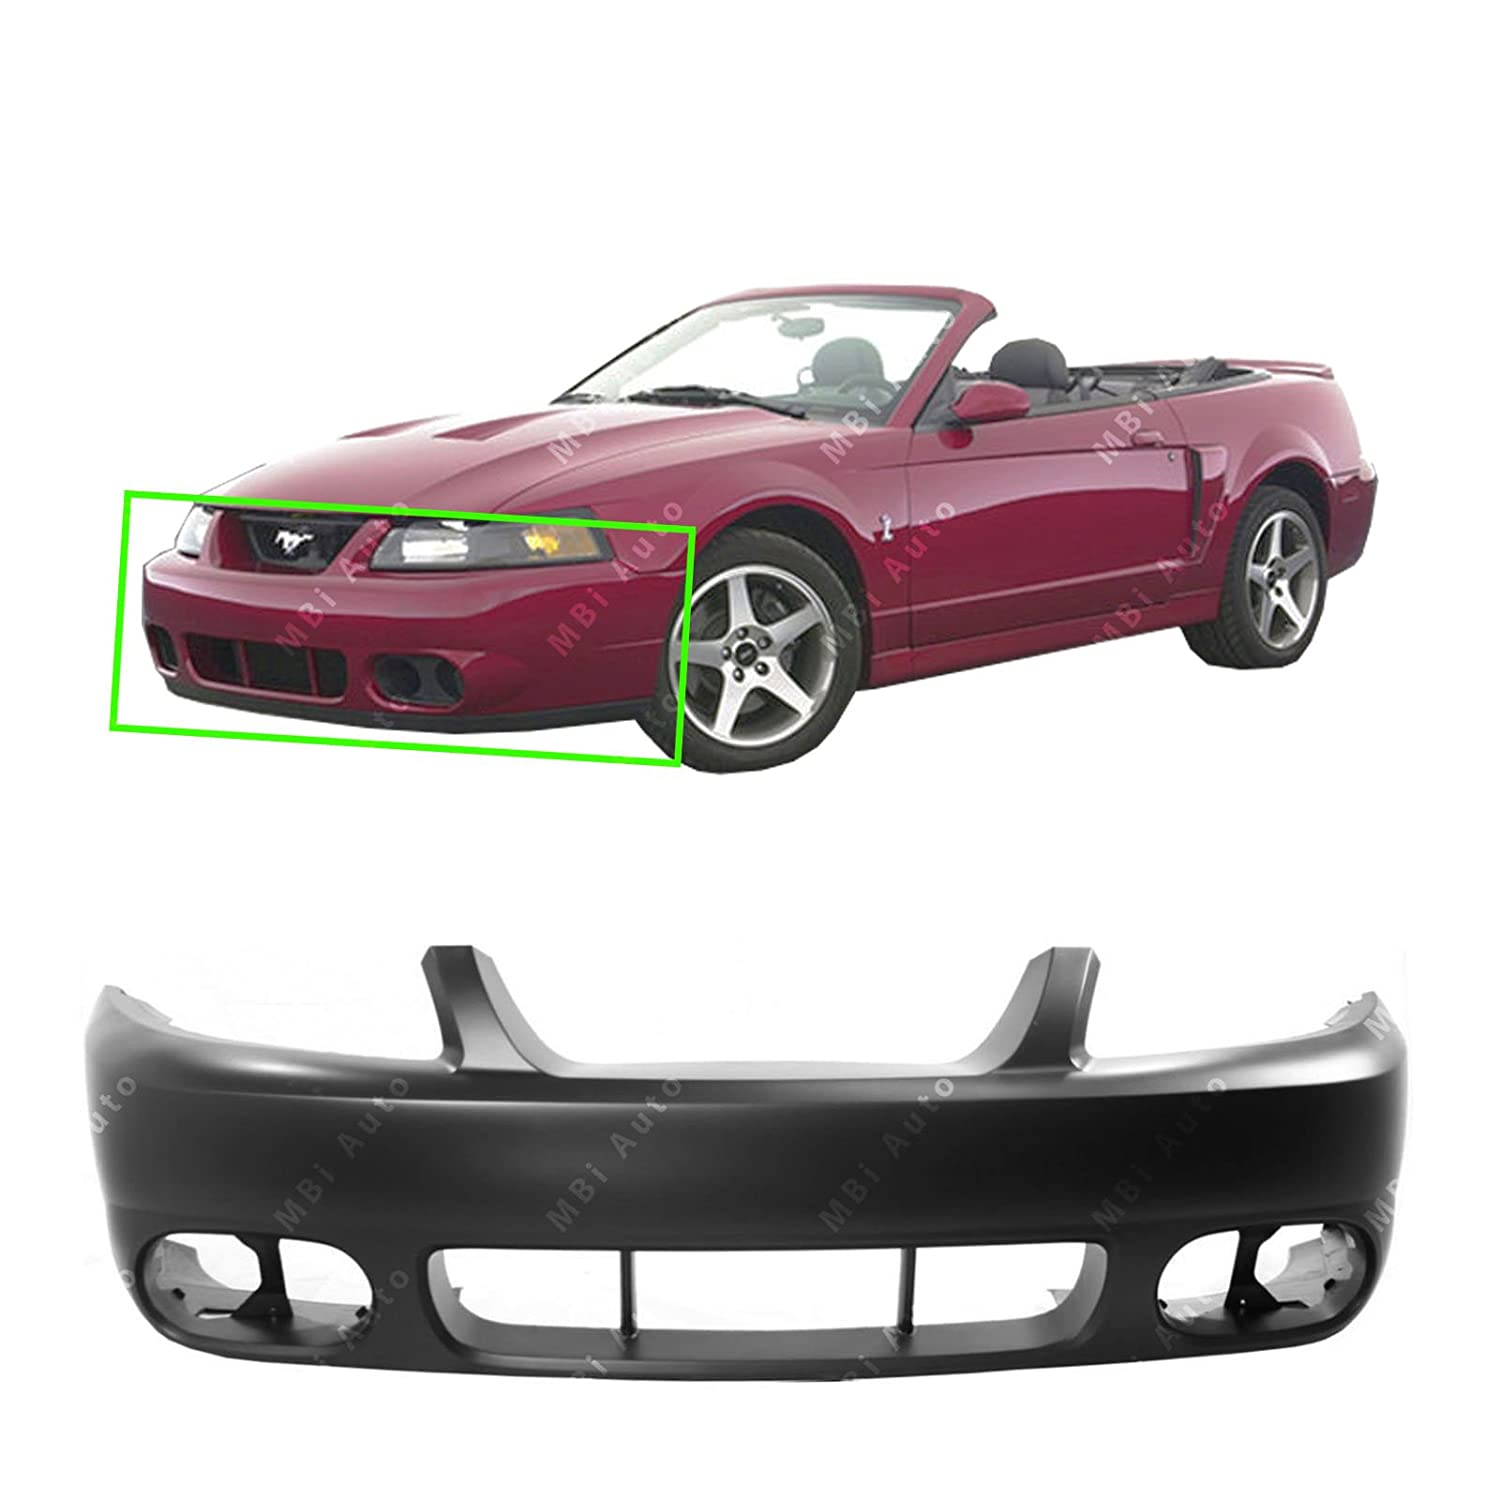 MBI AUTO - Primered, Front Bumper Fascia Cover for 2003 2004 Ford Mustang Cobra 03 04, FO1000533